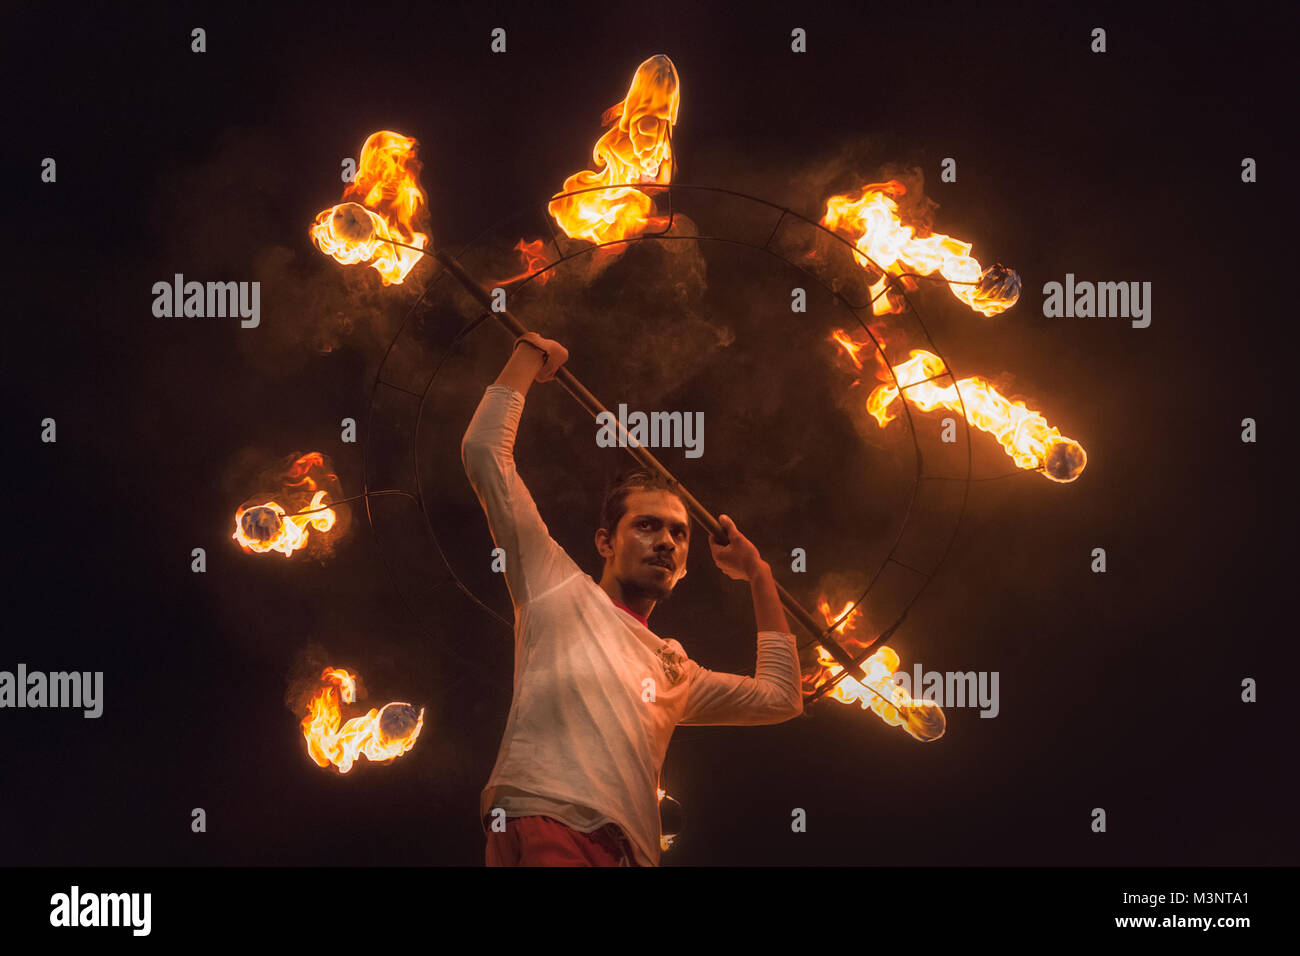 Sri Lanka Kandy Esala Perahera parade fire performer ring of fire - Stock Image